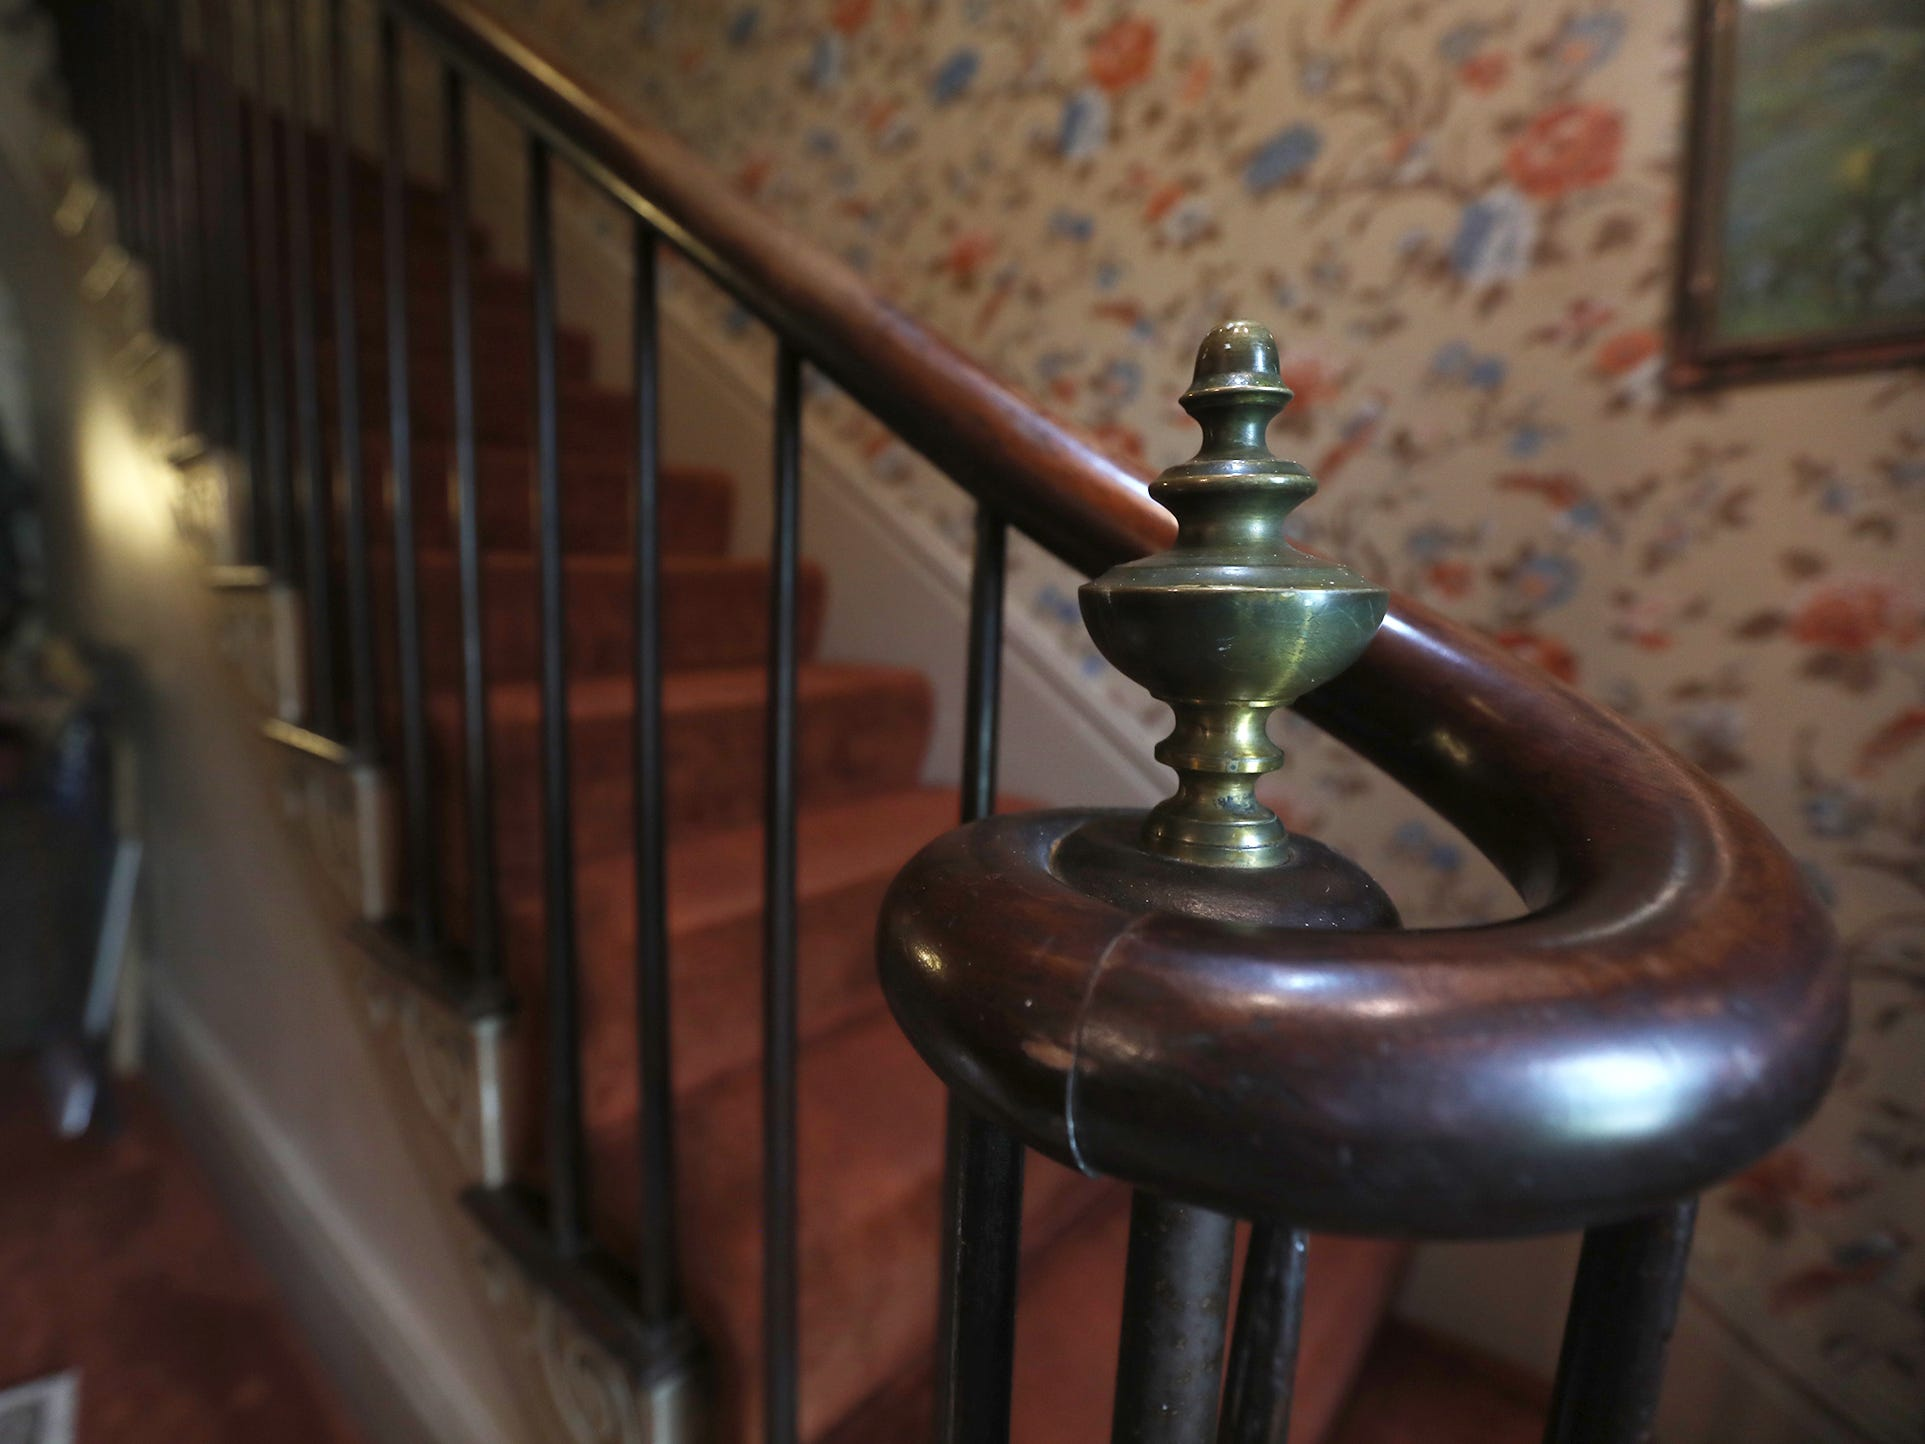 The staircase is made from mahogany.